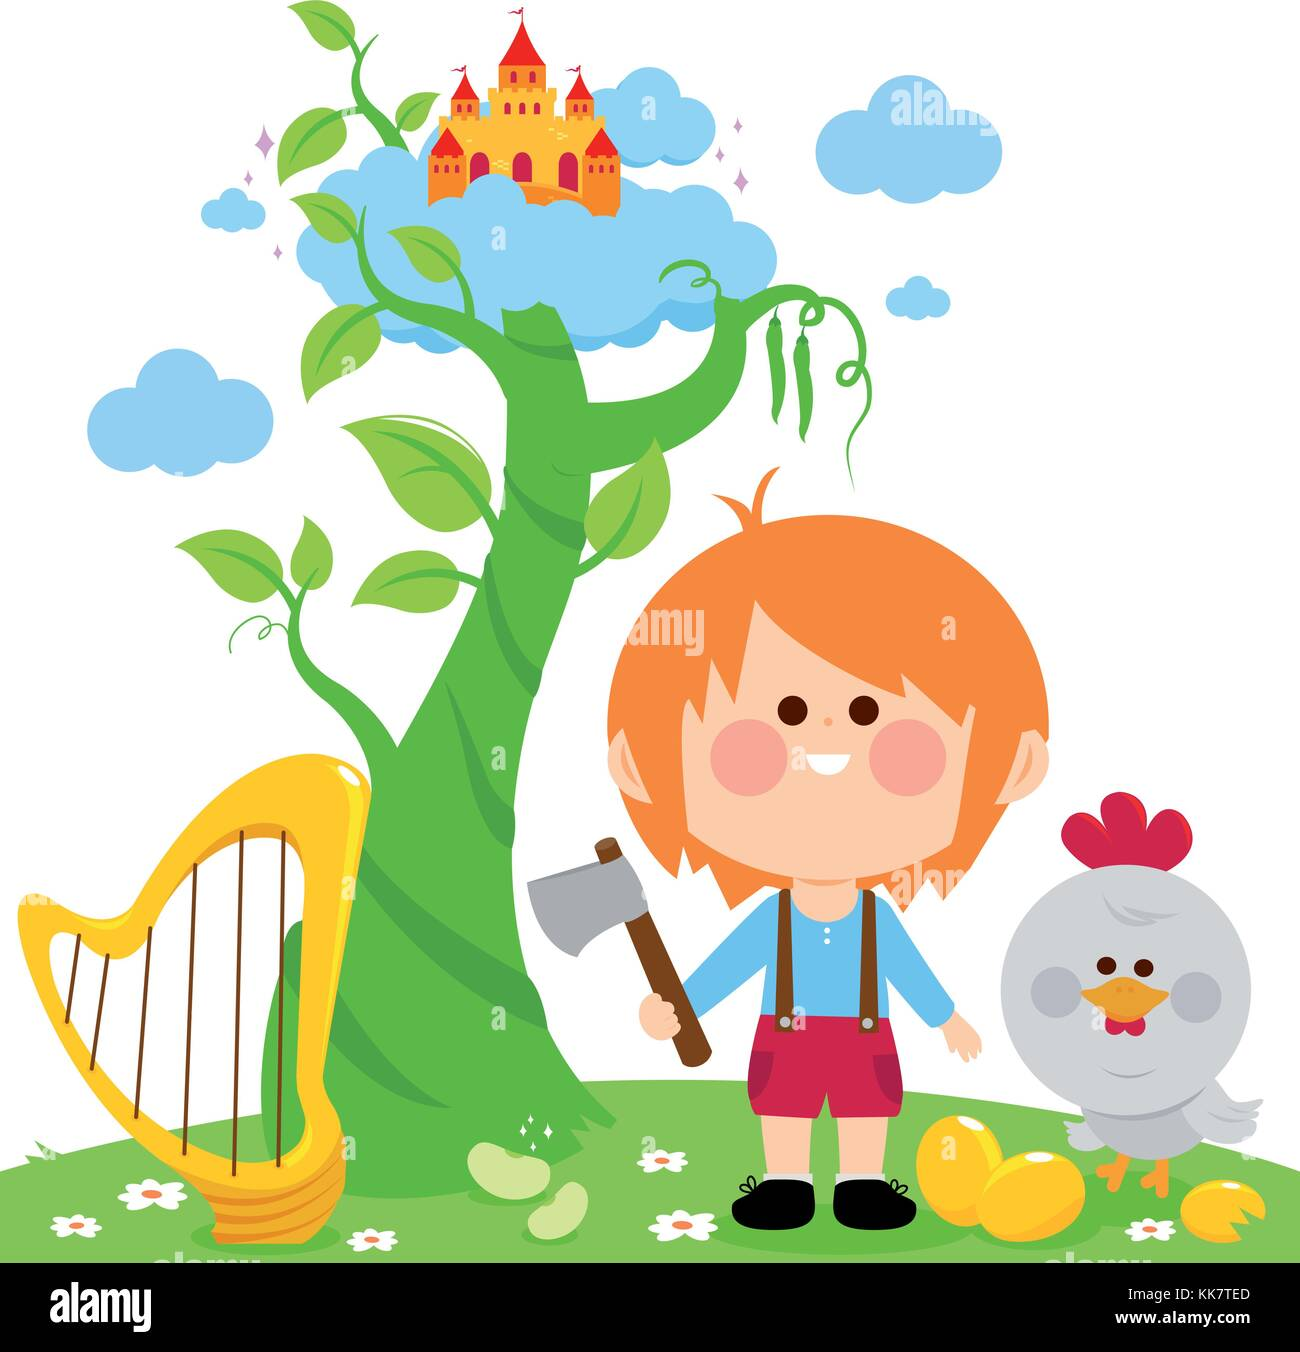 Jack And The Beanstalk Stock Photos Amp Jack And The